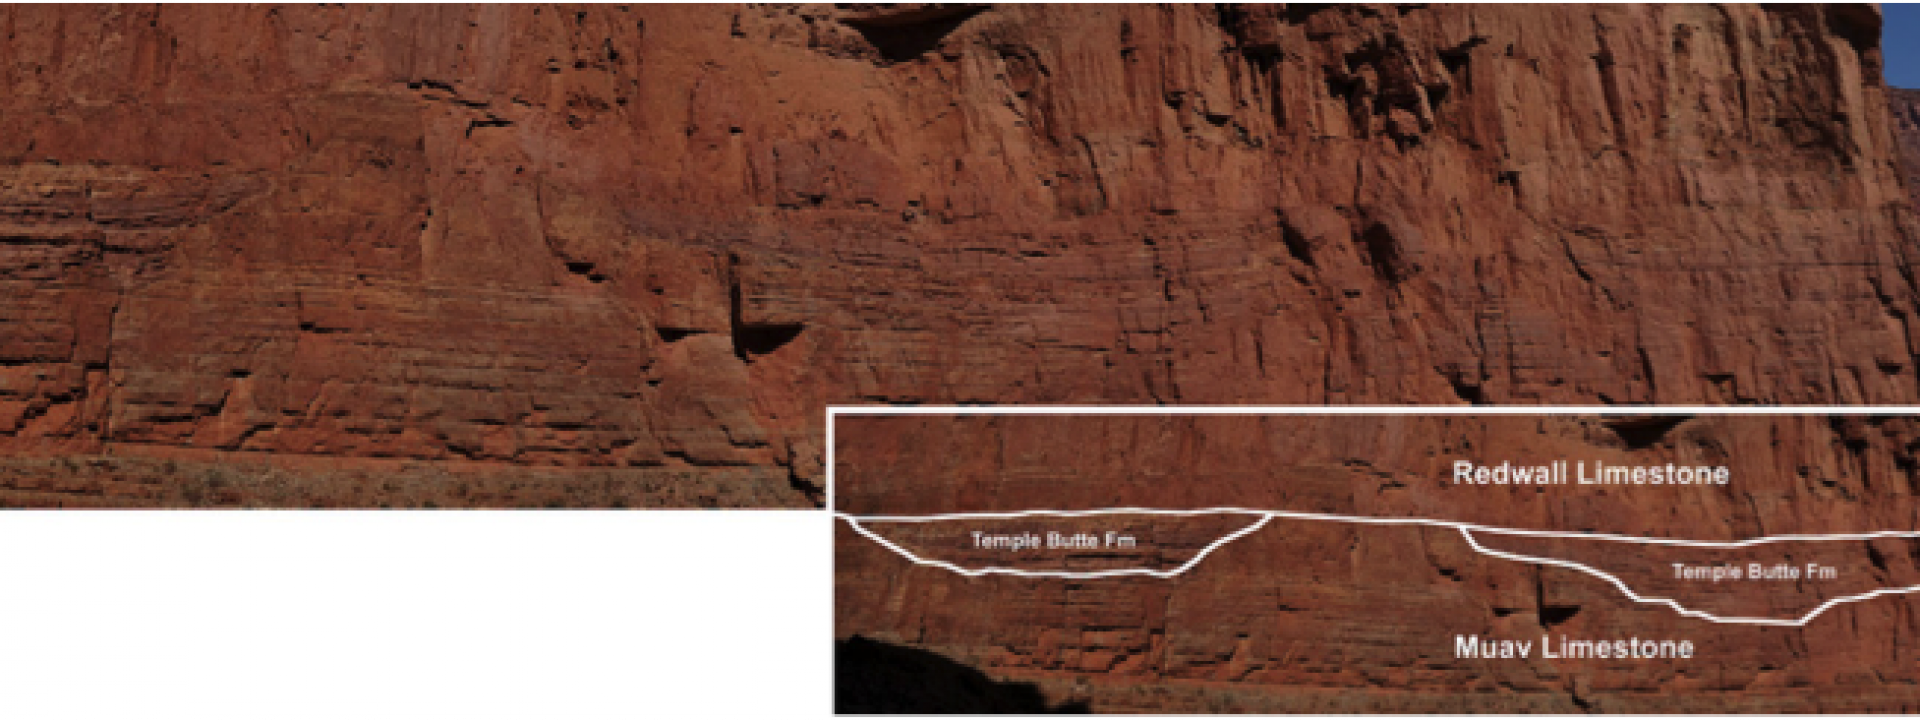 Flood Geology and the Grand Canyon: What Does the Evidence